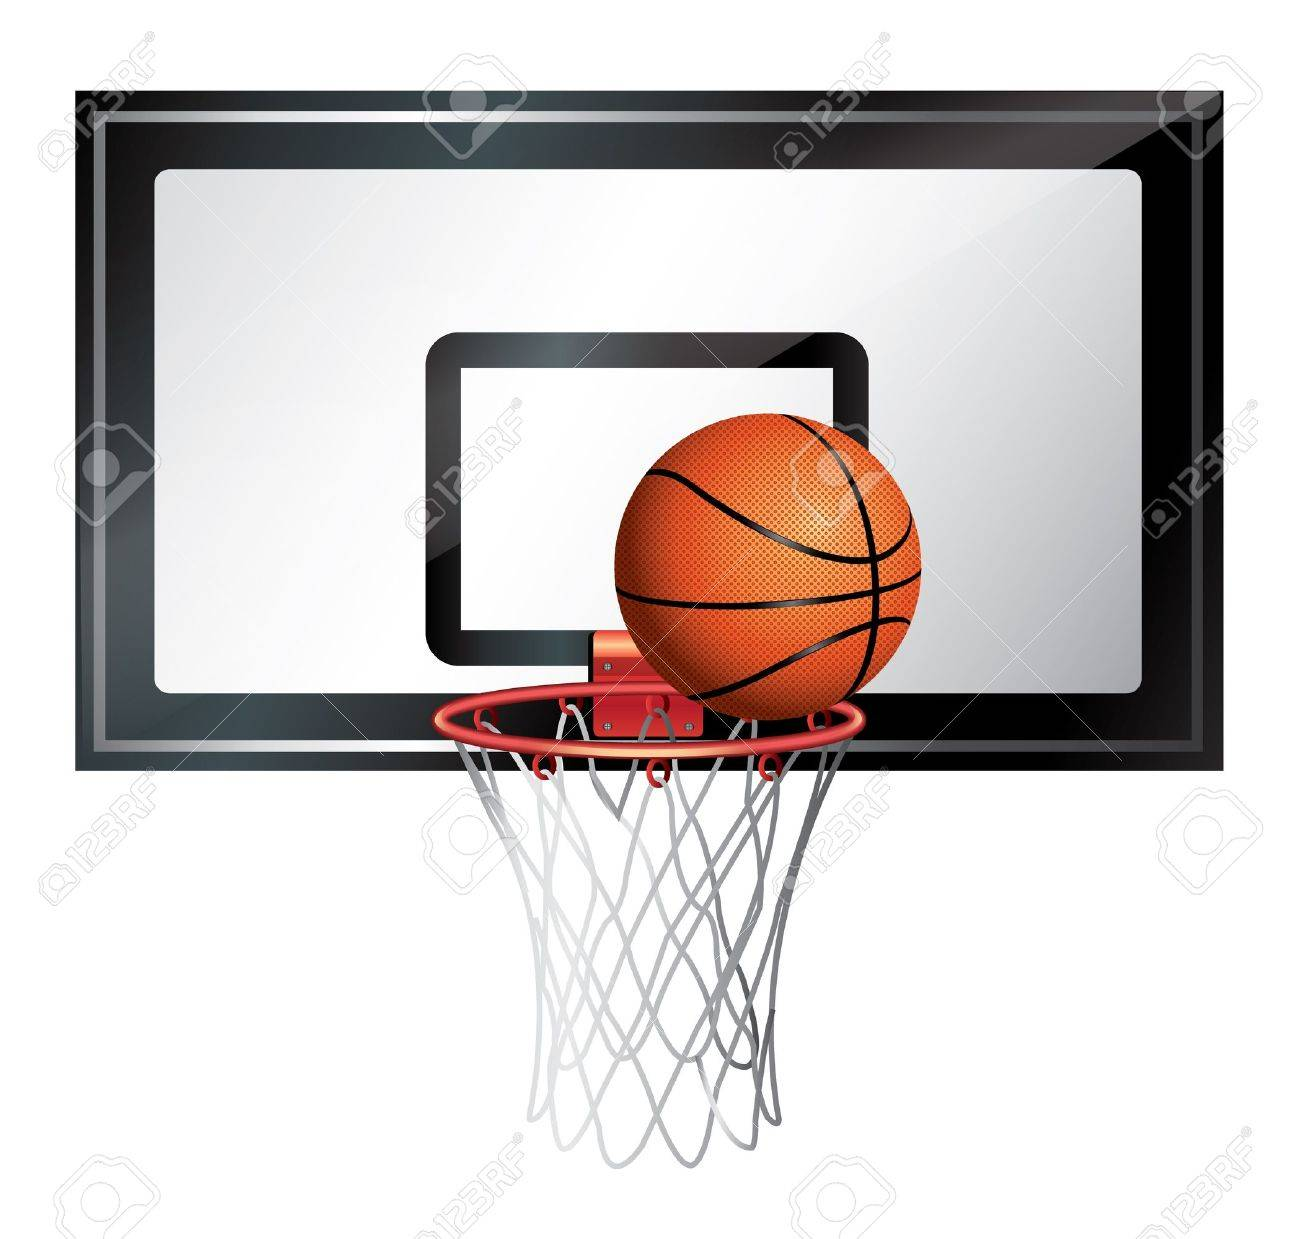 Basketball Net Stock Vector - 20747061